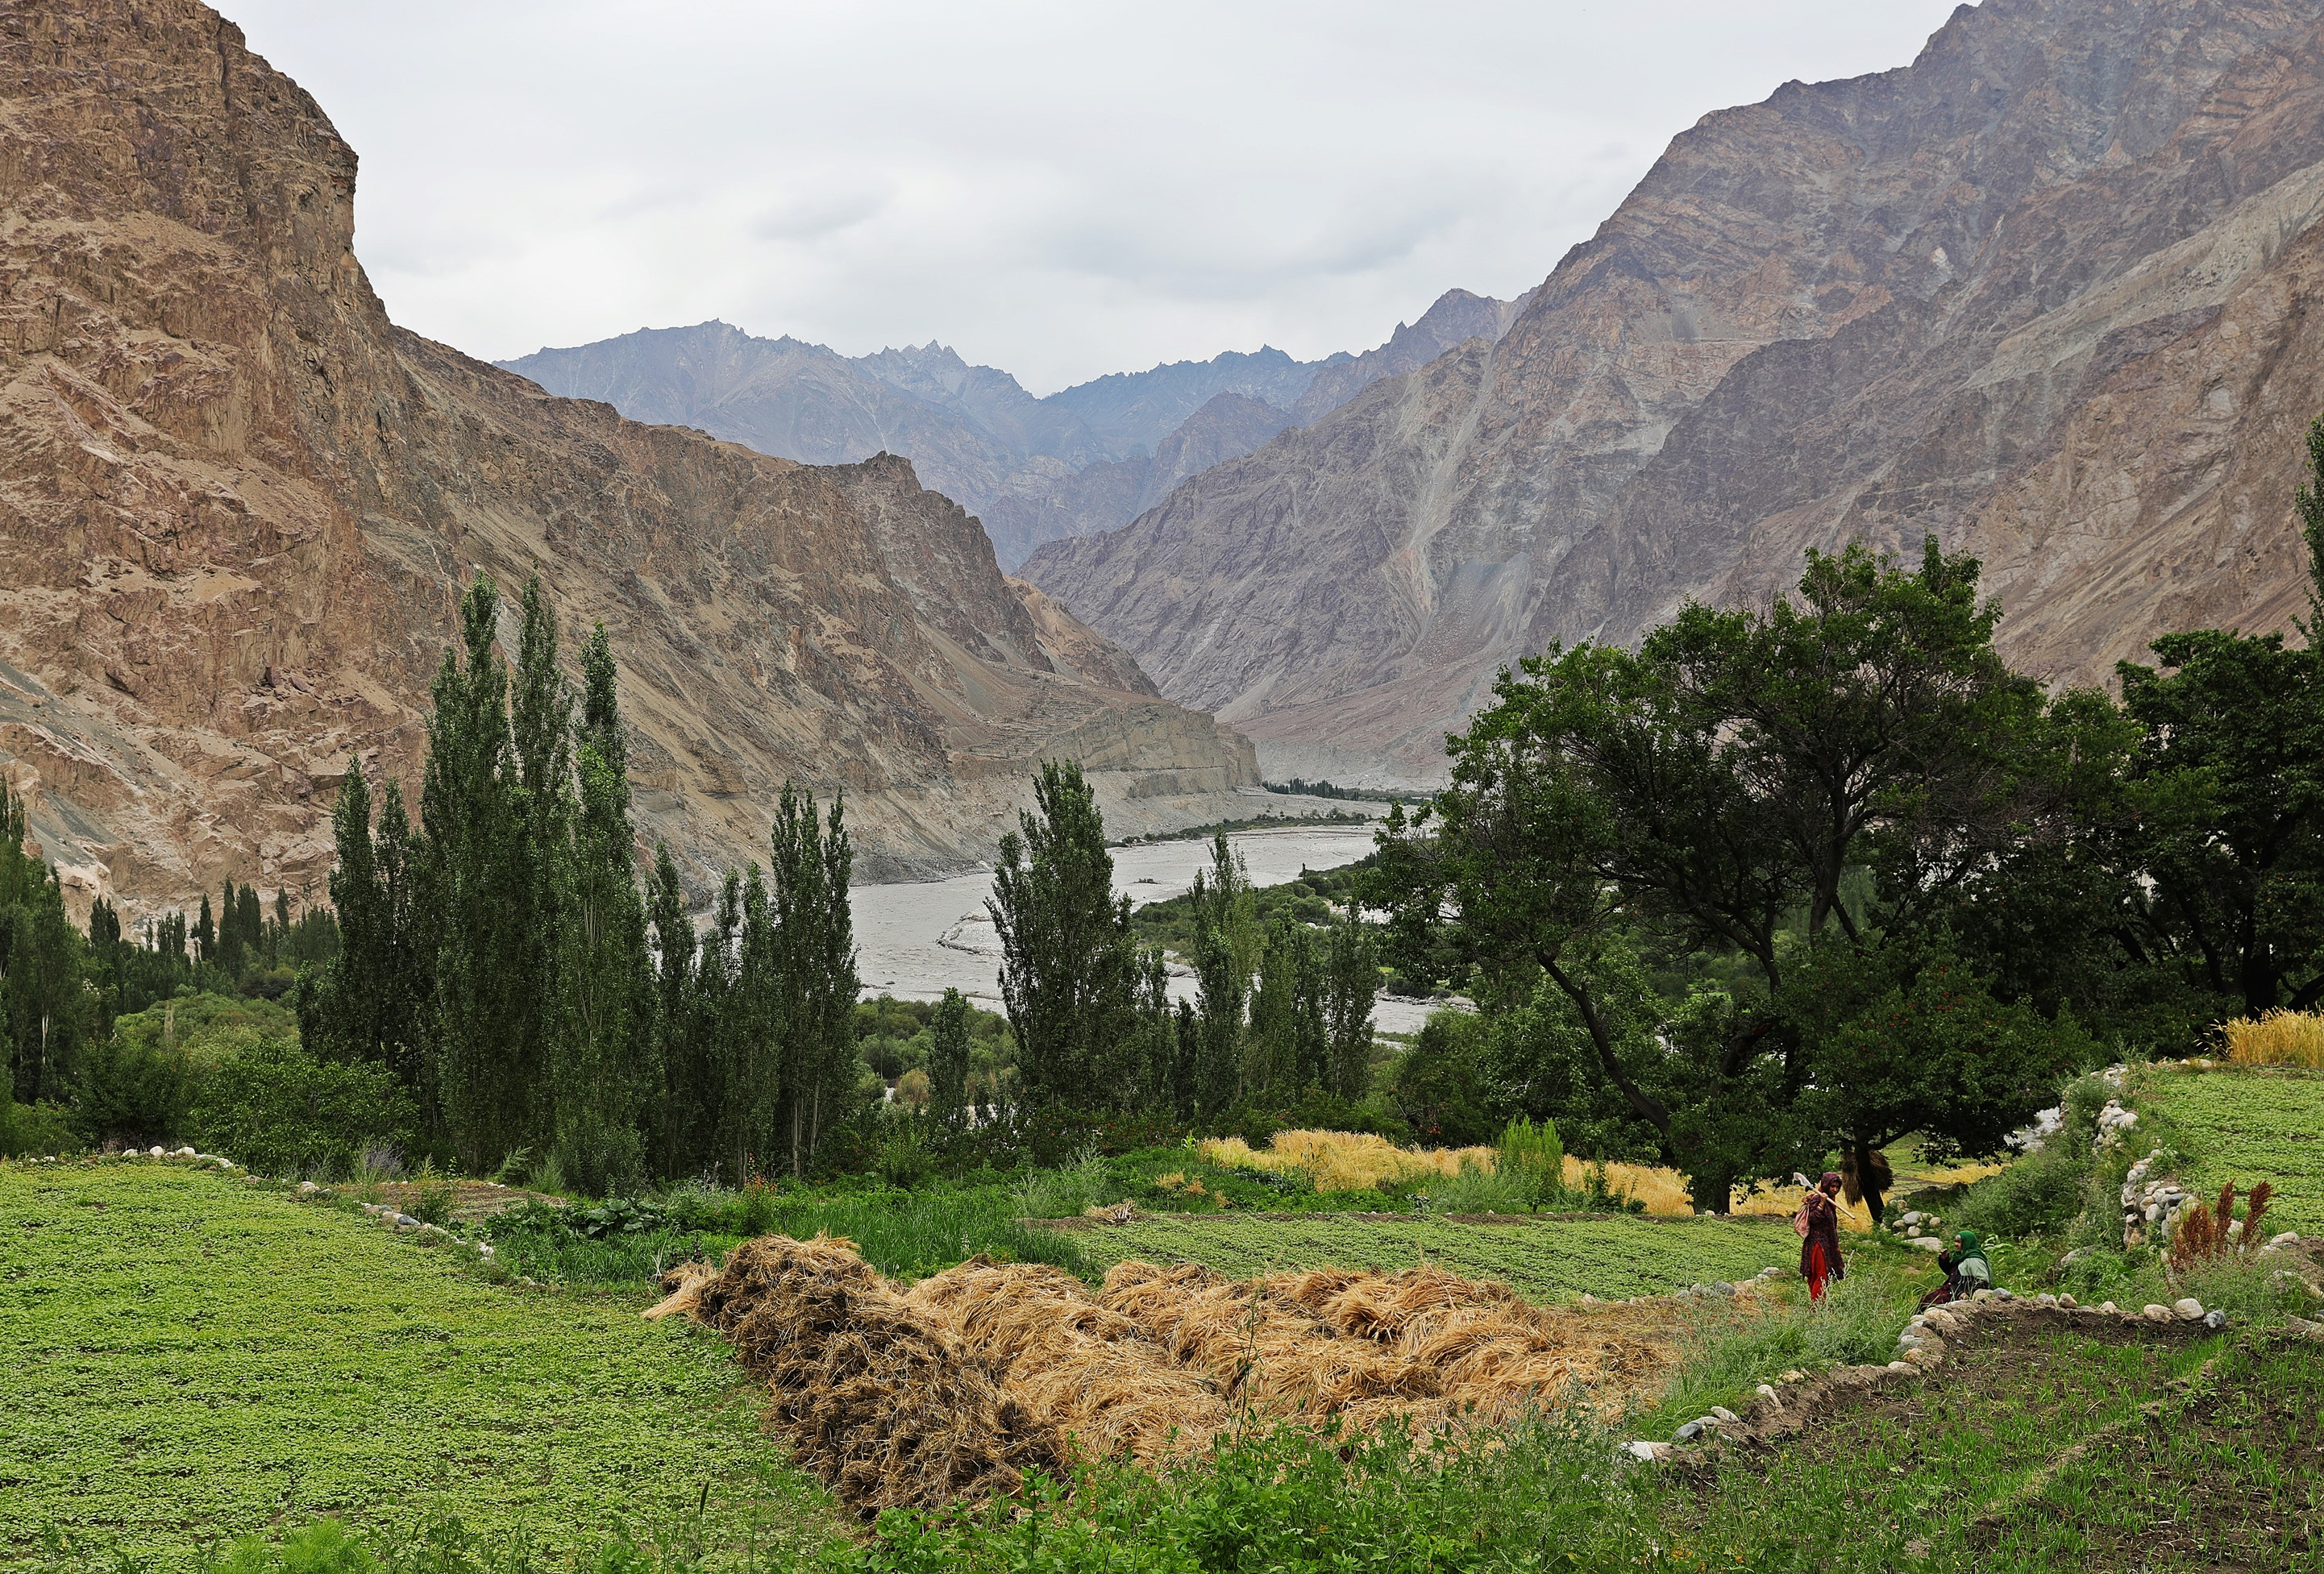 Barley fields above the Shyok River, Turtuk